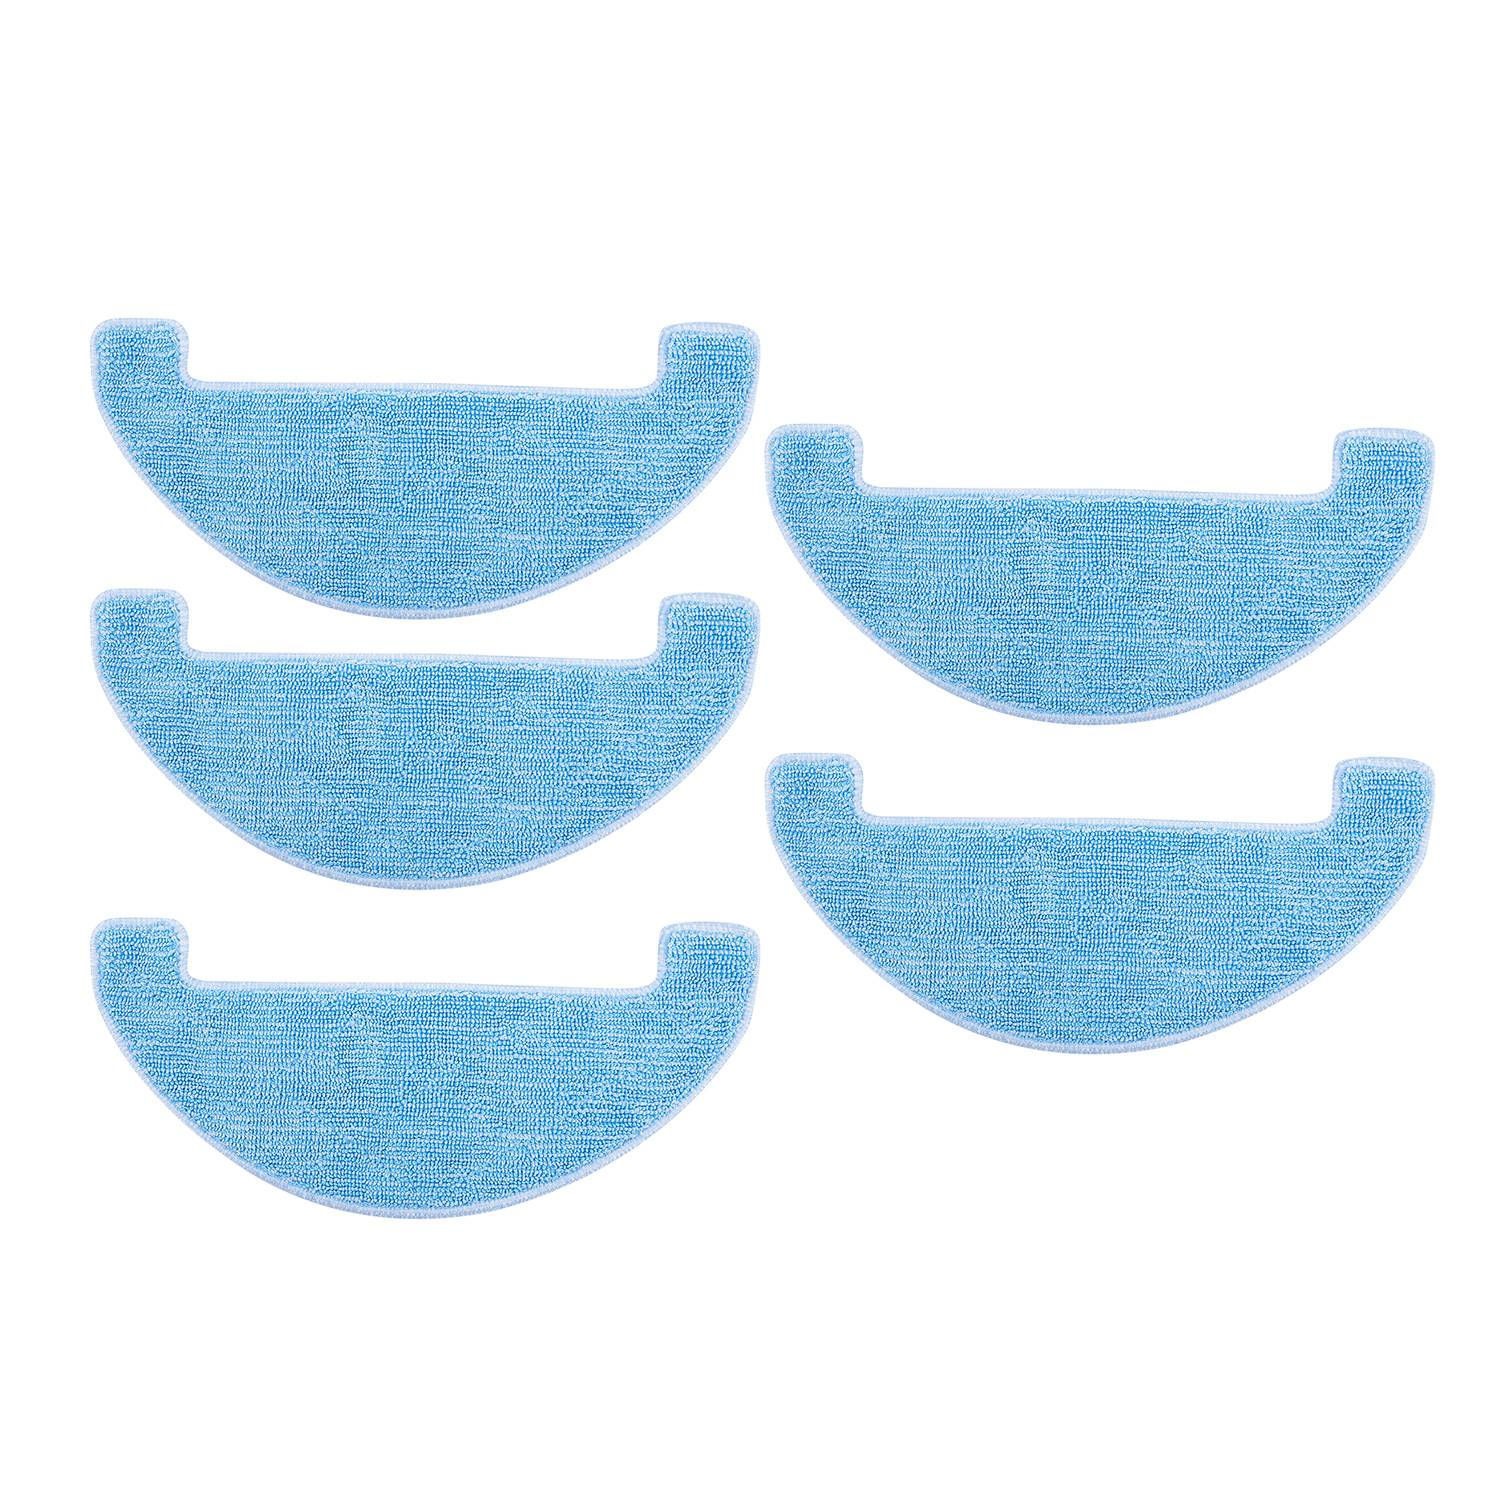 5Pcs Replacement Cleaning Pad Clean Mop For Ilife V80,V8S,X800,X750,X787,X785 Robotic Vacuum Cleaner Parts Accessories5Pcs Replacement Cleaning Pad Clean Mop For Ilife V80,V8S,X800,X750,X787,X785 Robotic Vacuum Cleaner Parts Accessories